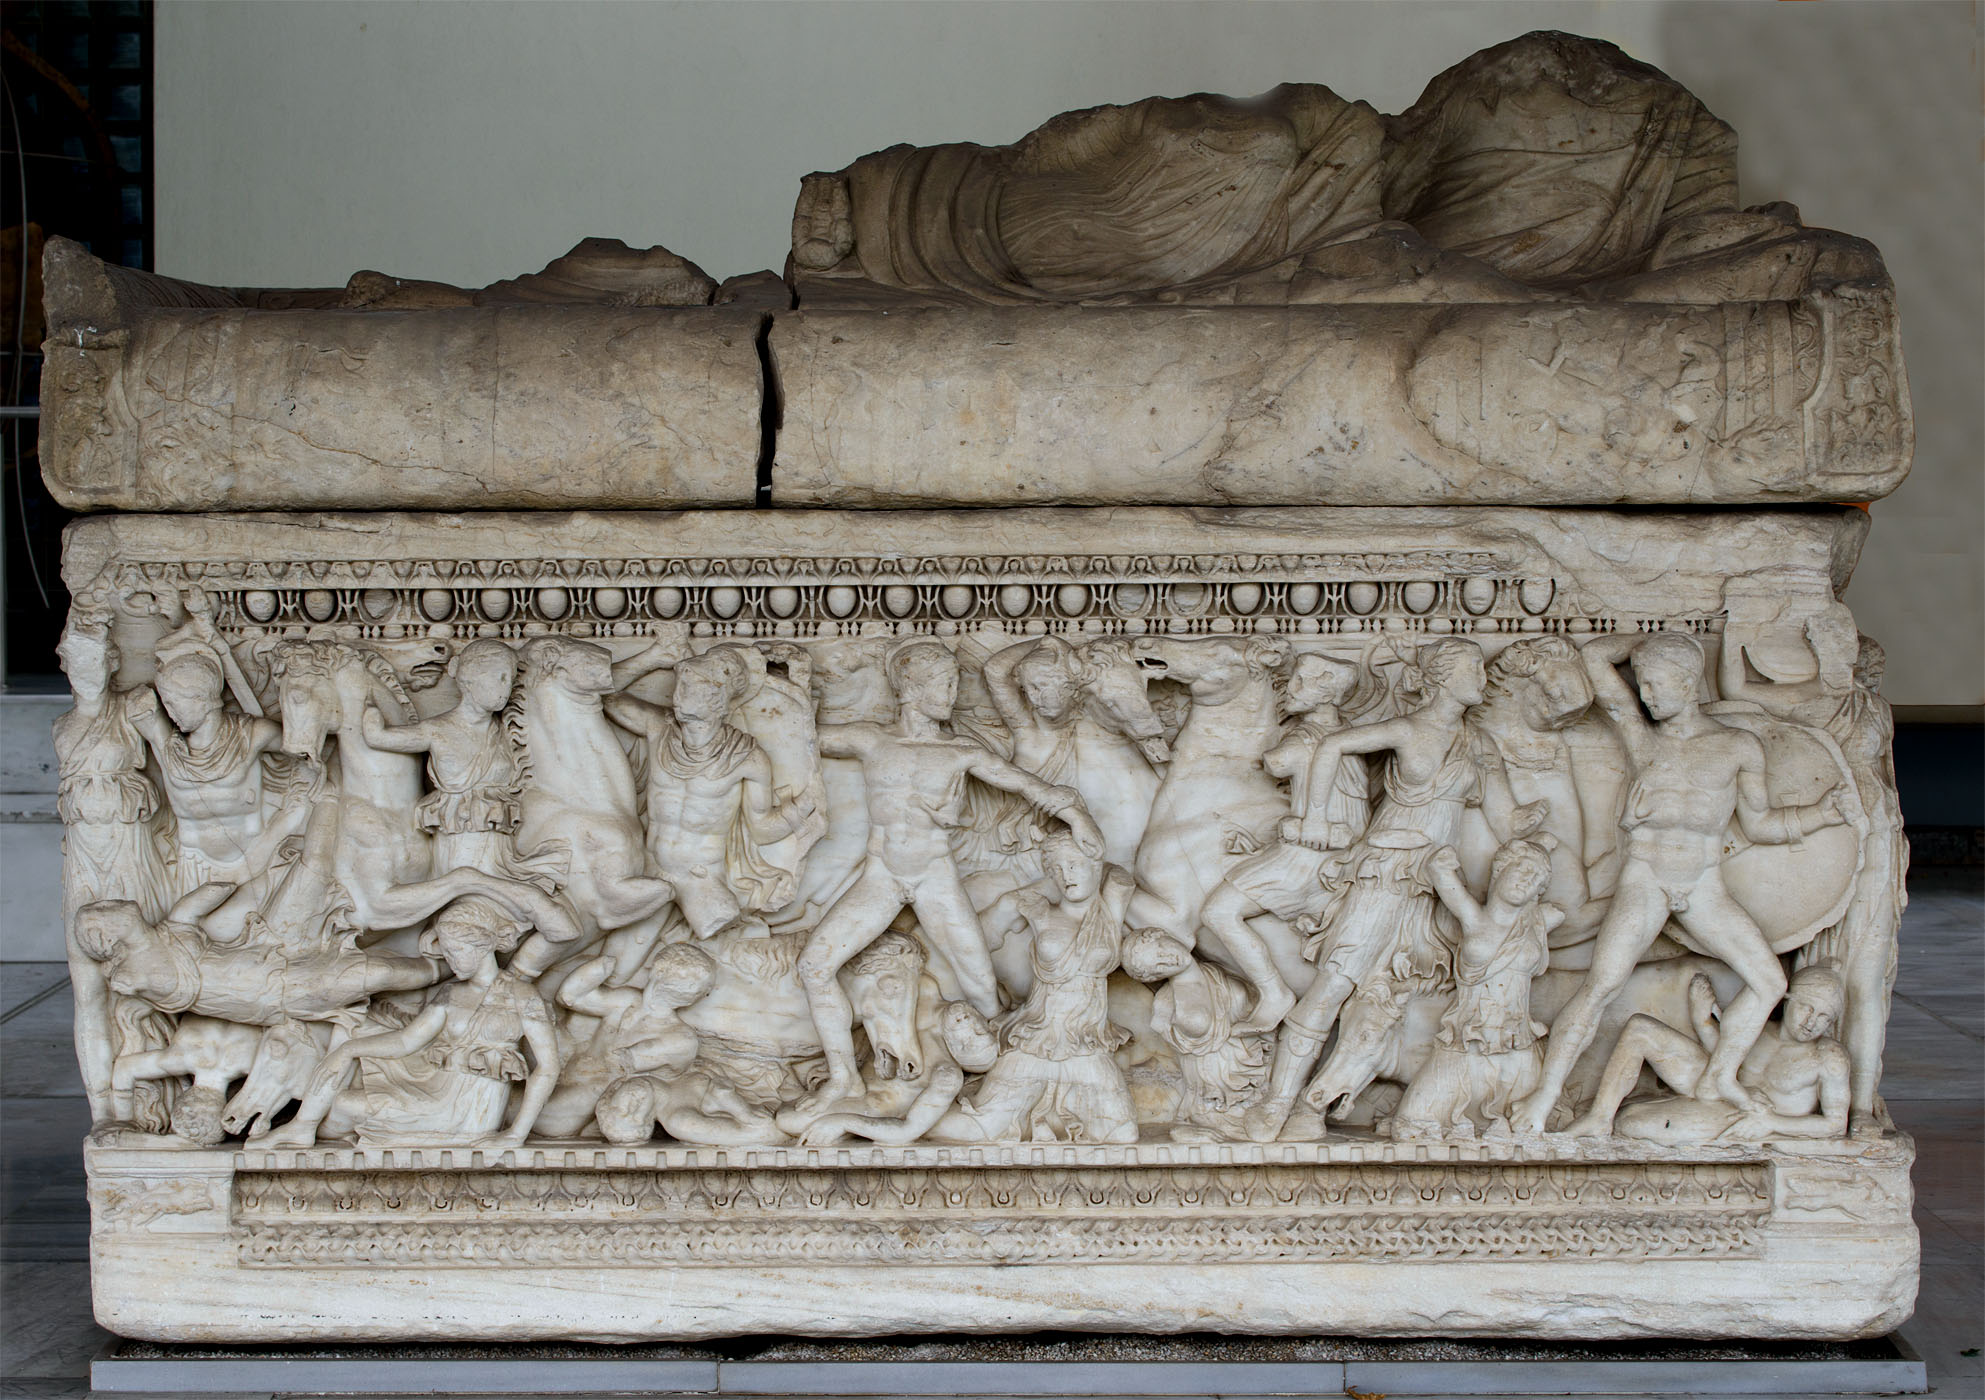 Attic sarcophagus with scenes of battles between the Greeks and the Amazons (the front side). Marble. 220—230 CE. Thessaloniki, Archaeological Museum